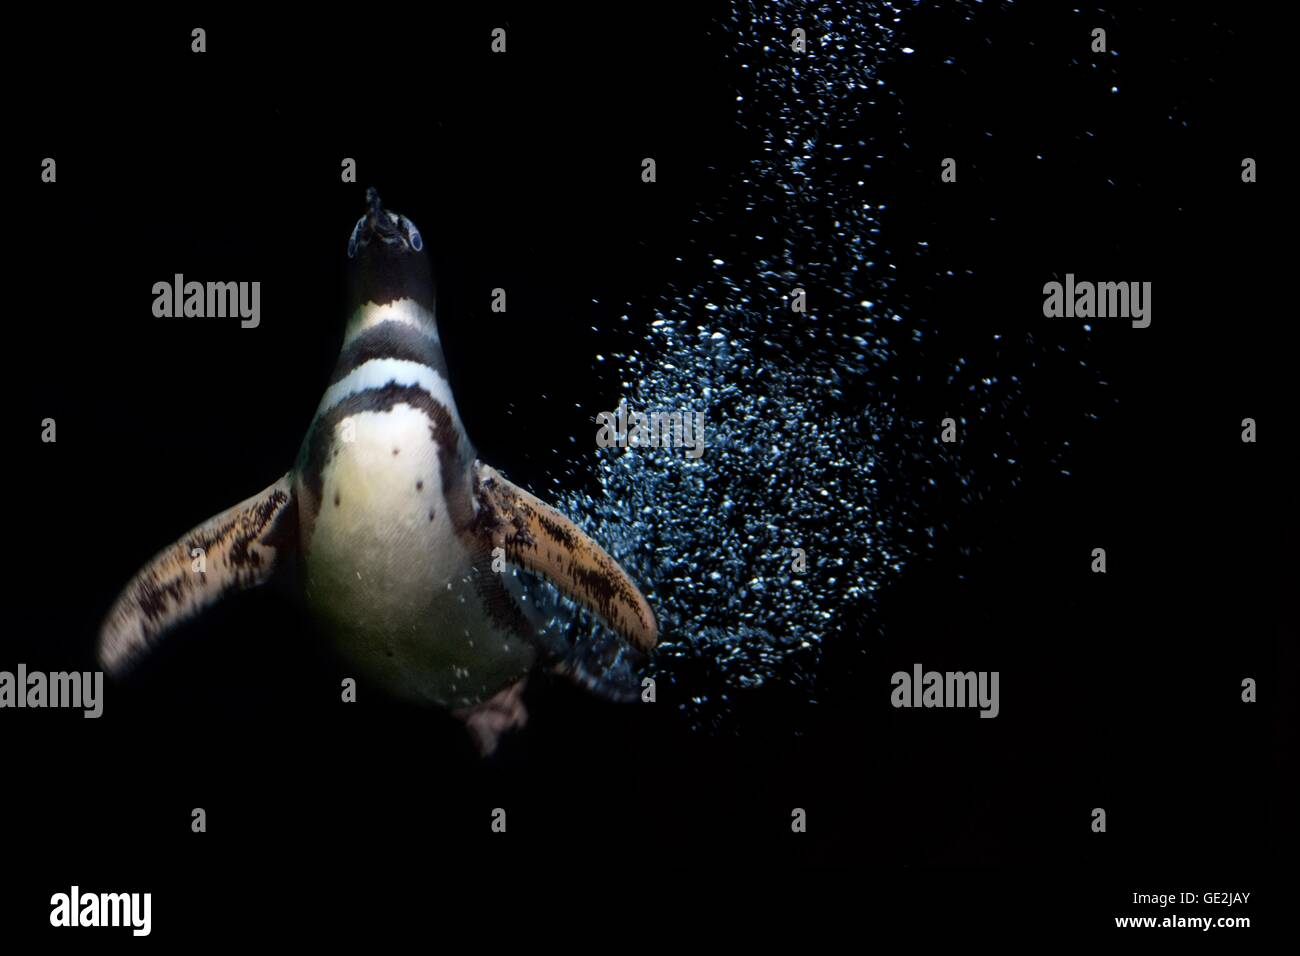 penguin - Stock Image